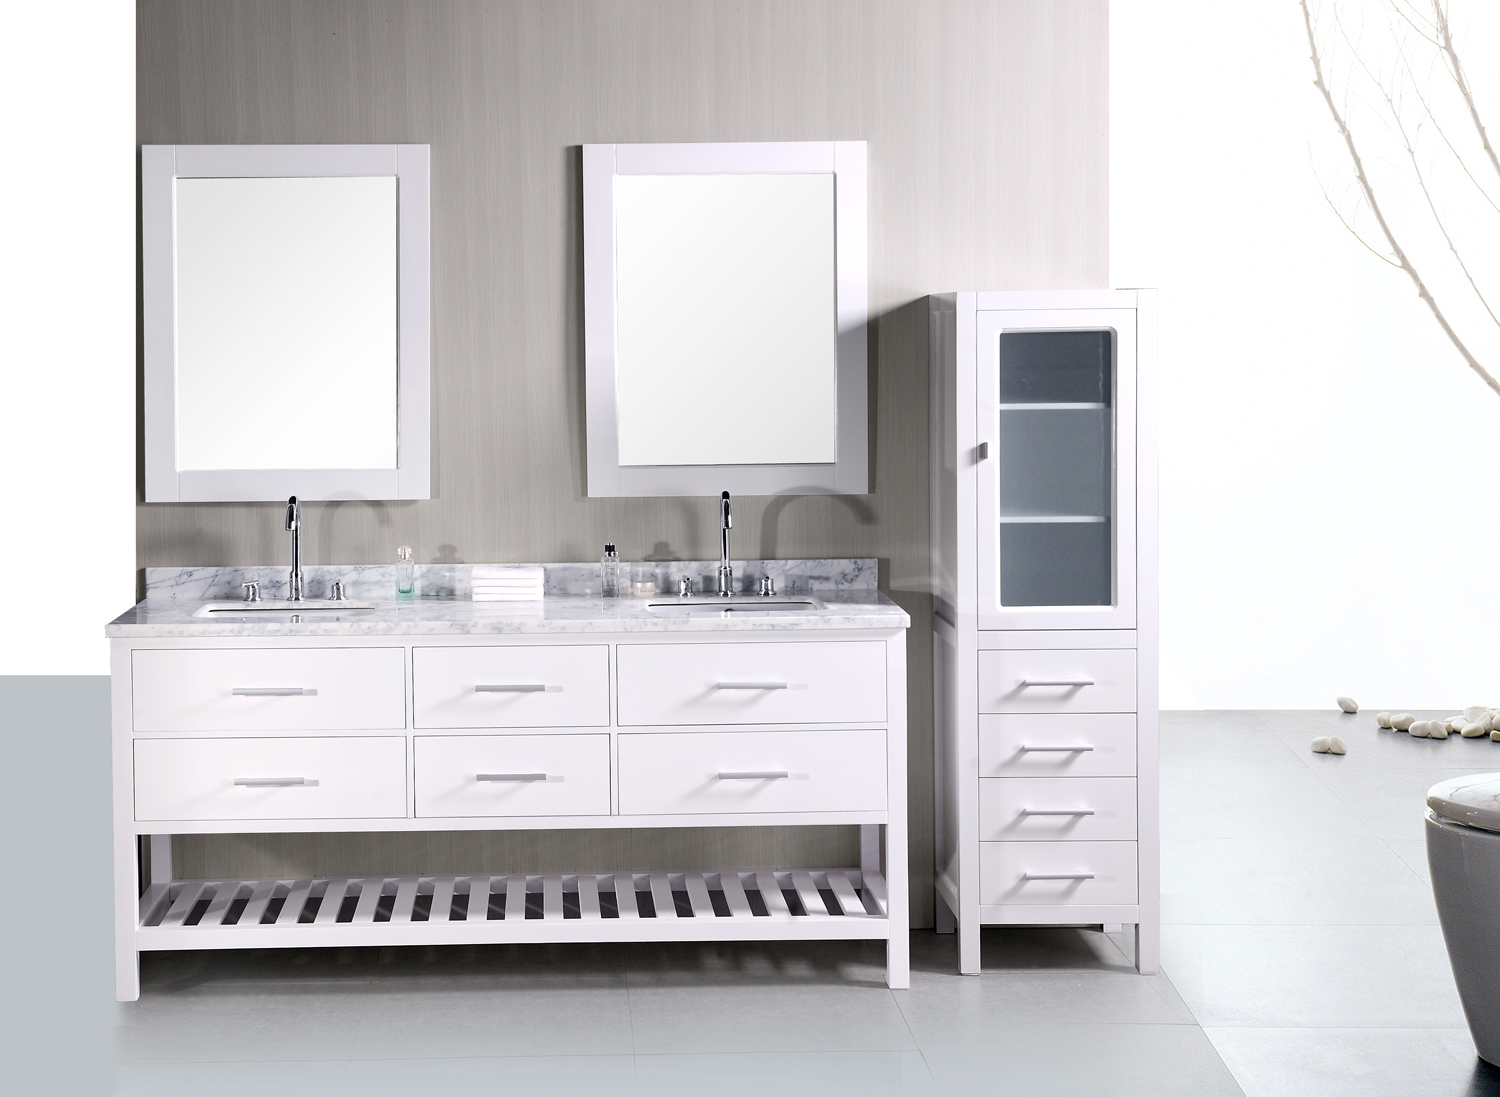 Fancy Adorna 72 Inch Double Sink Bathroom Vanity Set In Pearl White, Solid within Bathroom Vanities Double Sink 72